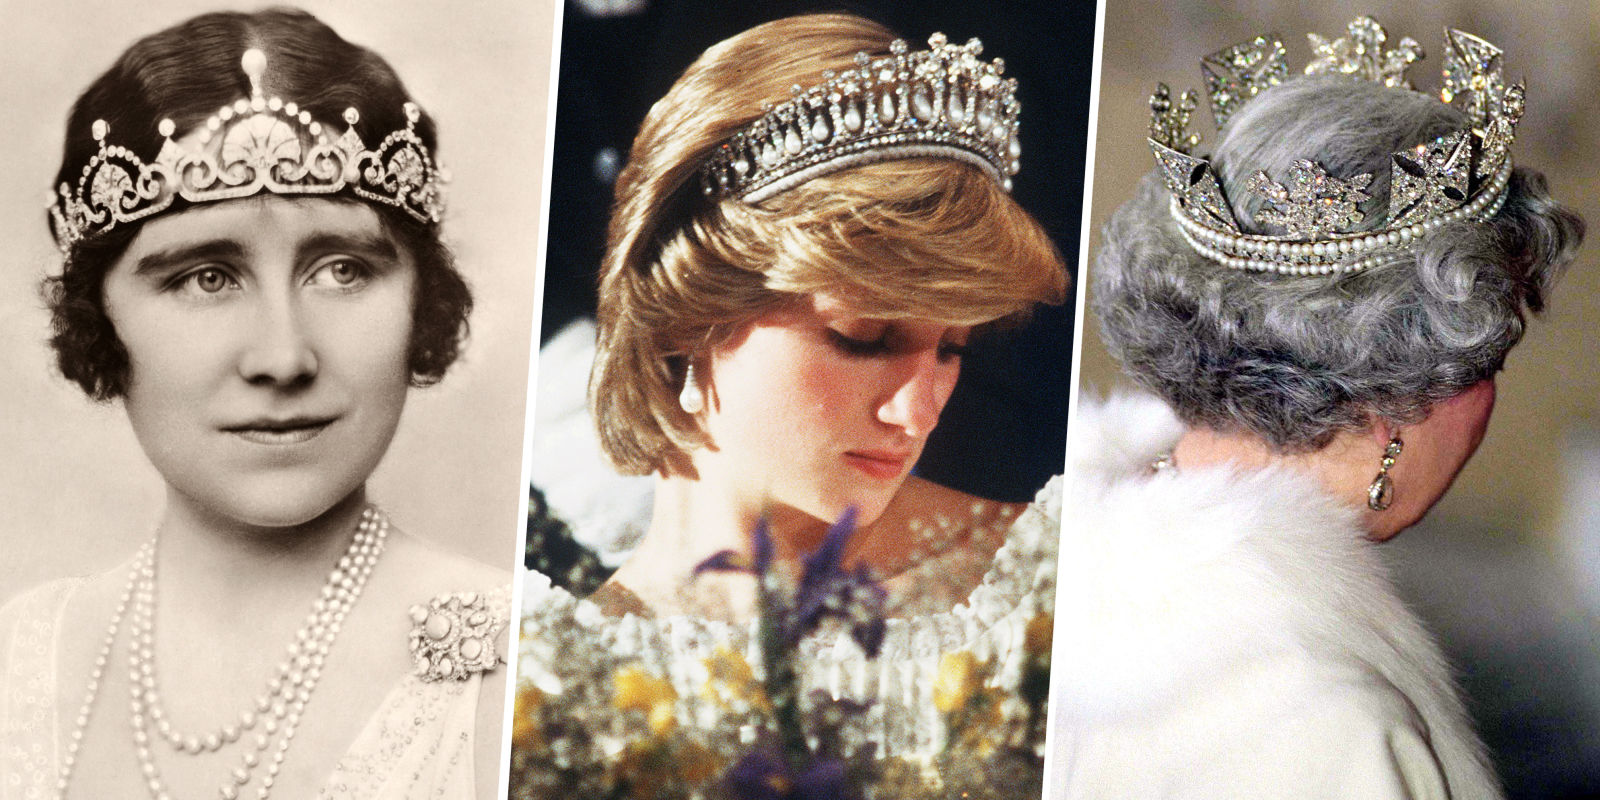 Princess Margaret Style >> The Royal Family's Tiaras - The Royal Family's Jewels